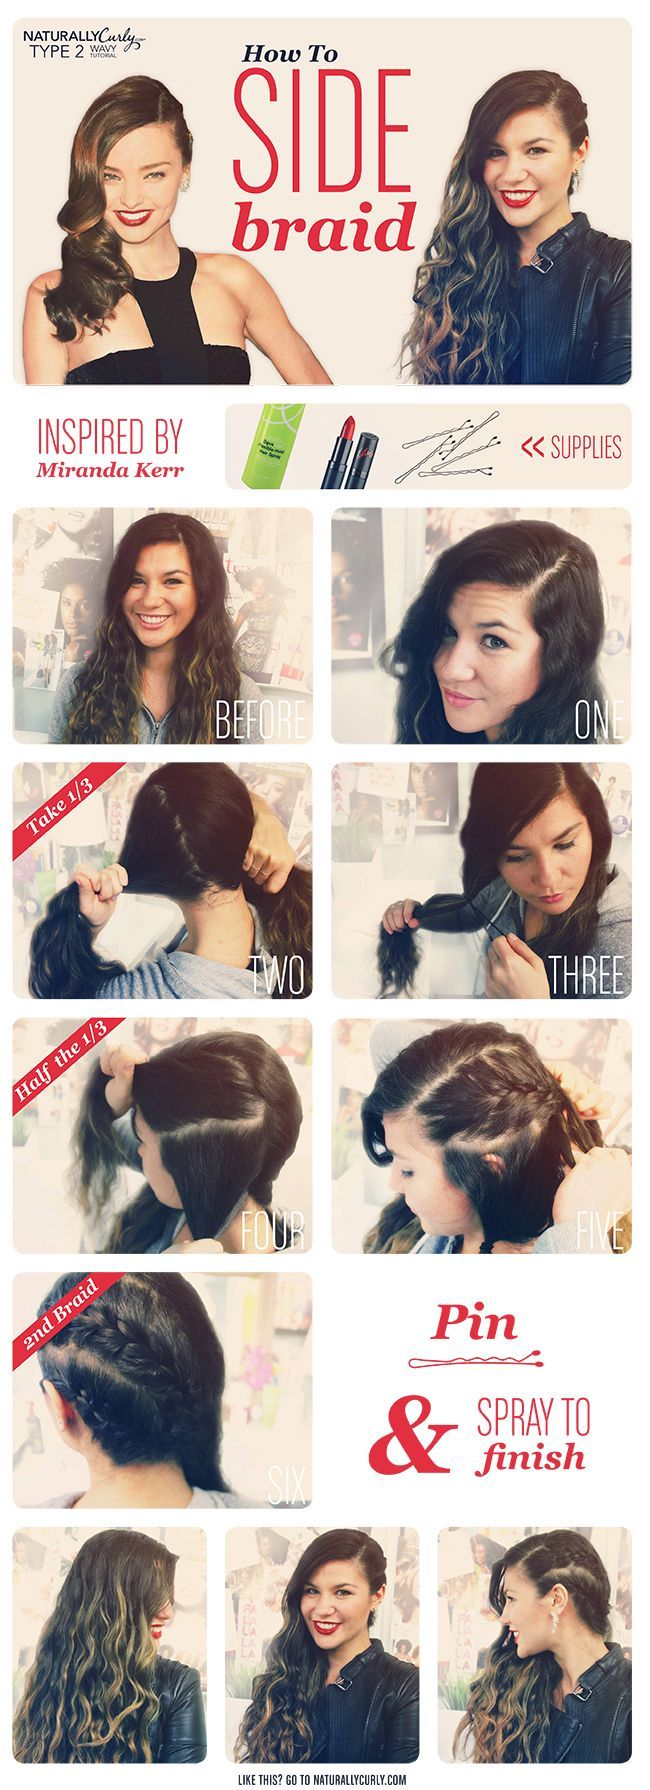 Miranda Kerr Wavy Side Braid Tutorial - #Braid #Kerr #Miranda #Side #tutorial #Wav